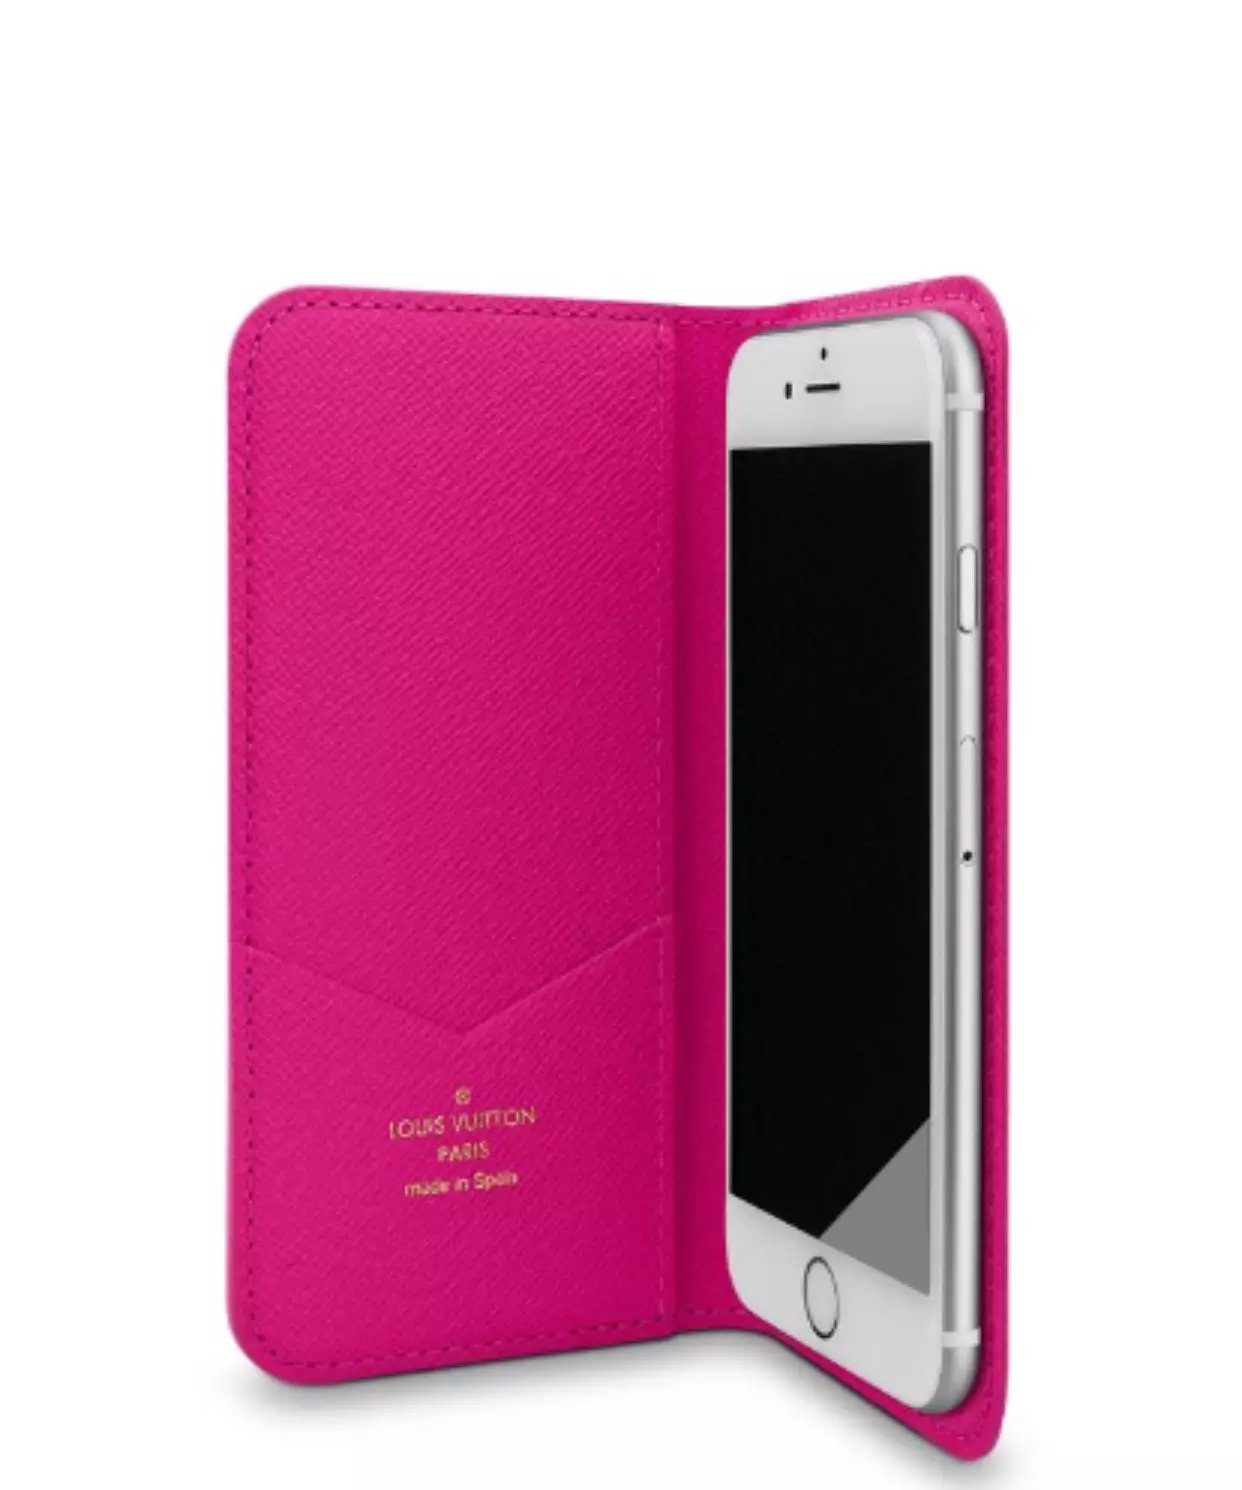 hülle iphone iphone schutzhülle Louis Vuitton iphone 8 Plus hüllen iphone hülle drucken handytasche iphone 8 Plus leder silikon hülle 8 Pluslber machen coole handyhüllen pinke iphone 8 Plus hülle 8 Plus a8 Plus iphone